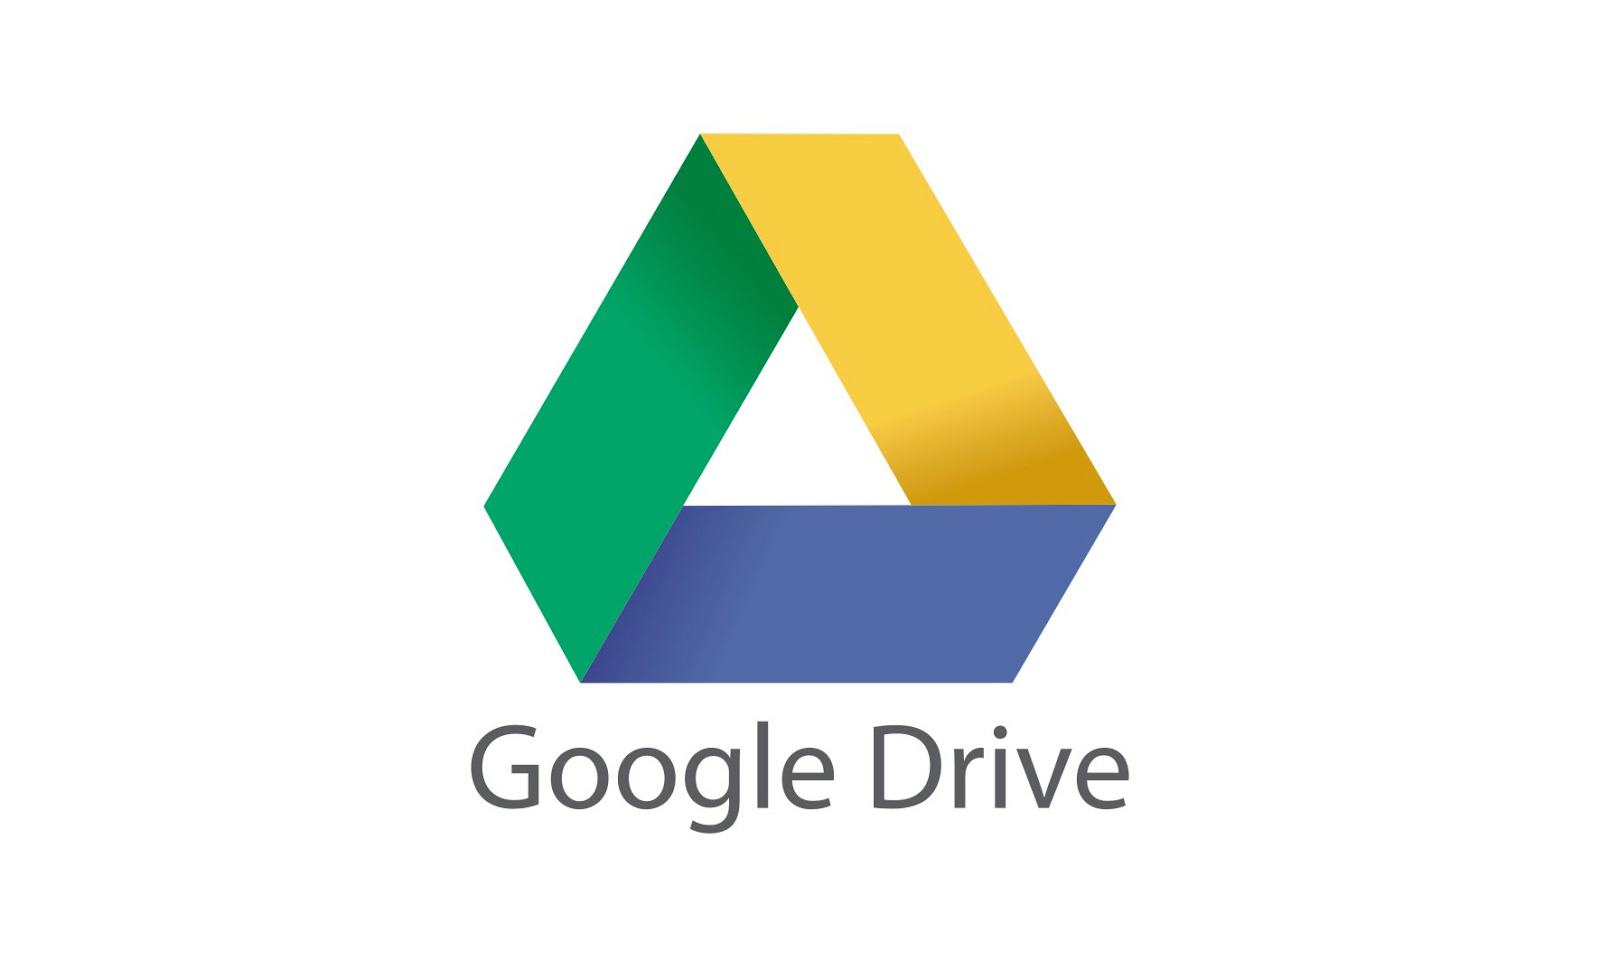 google drive functions security and applications Every google account comes with today's most advanced security features built in sign in to see if your security settings are up to date  subscriptions & reservations language & input tools accessibility your google drive storage delete your account or services.